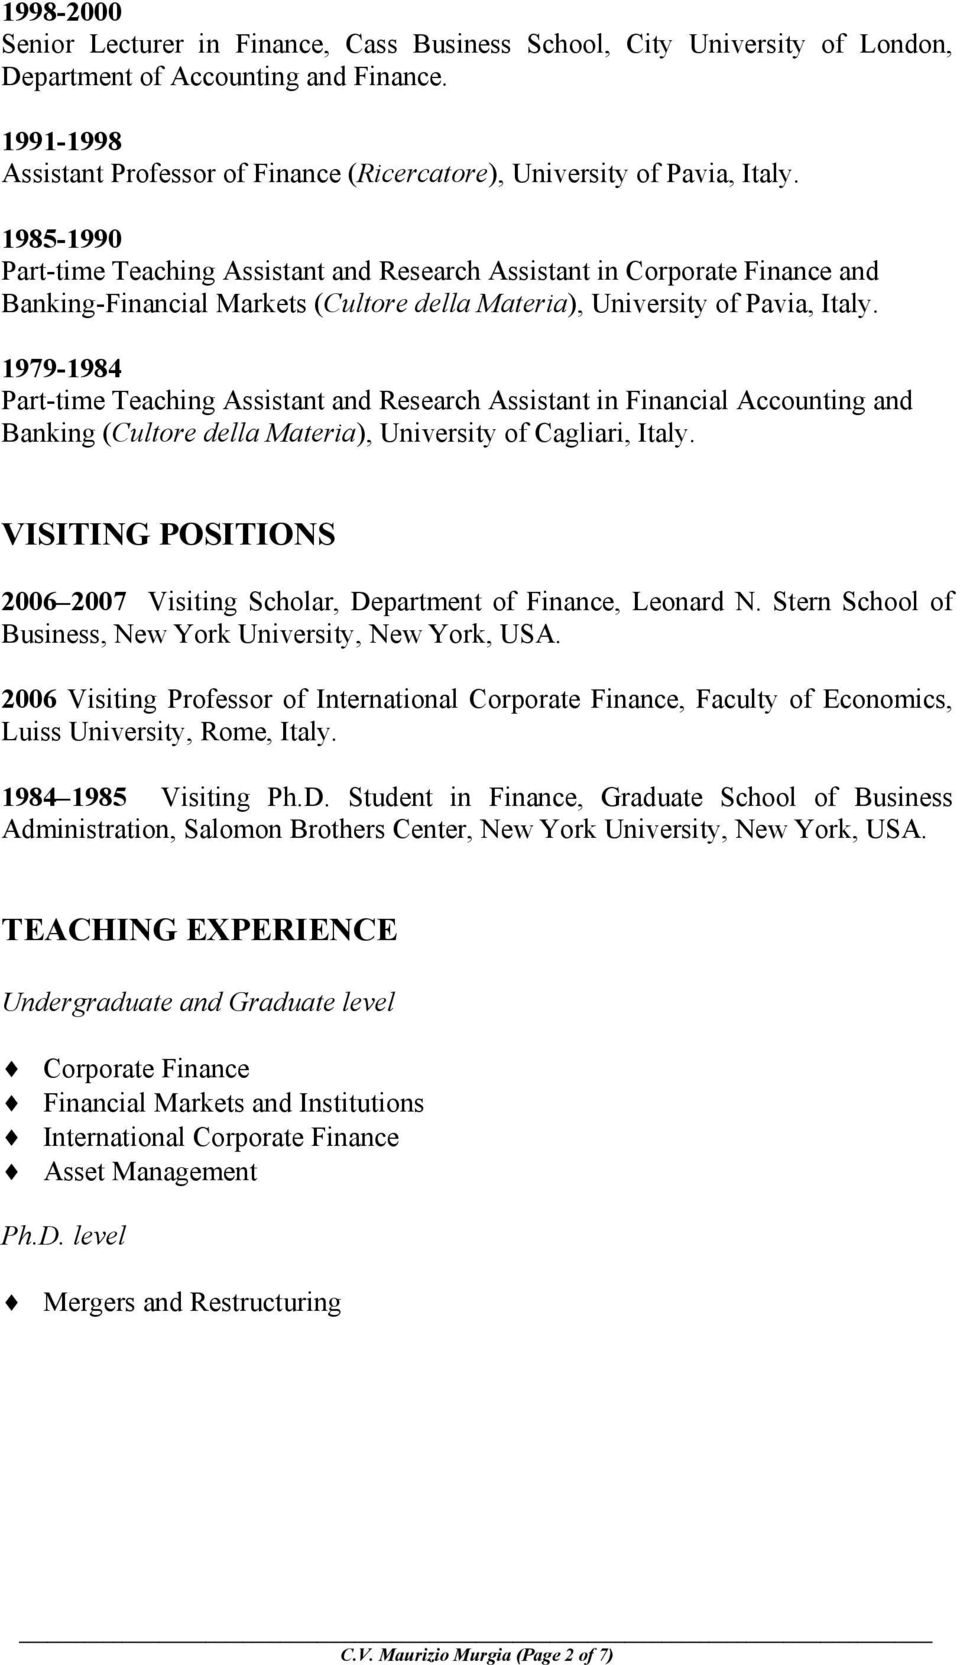 1985-1990 Part-time Teaching Assistant and Research Assistant in Corporate Finance and Banking-Financial Markets (Cultore della Materia), University of Pavia, Italy.